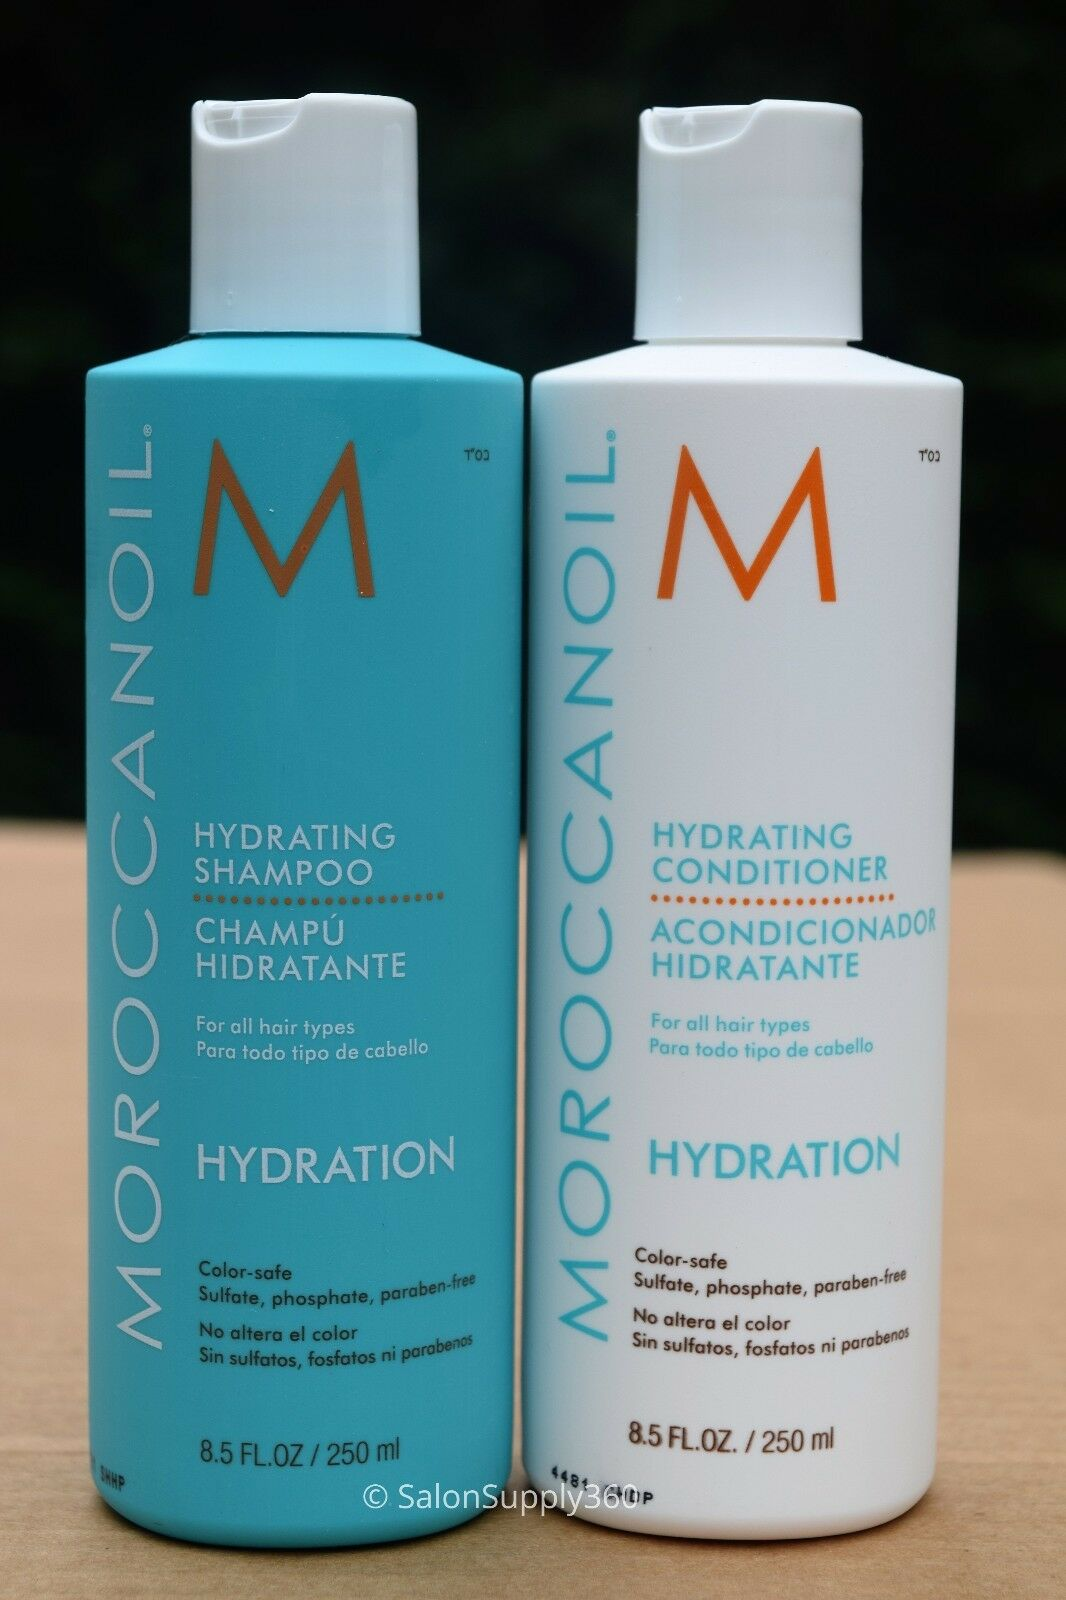 MOROCCANOIL Hydrating Shampoo and Conditioner Duo, 8.5 oz